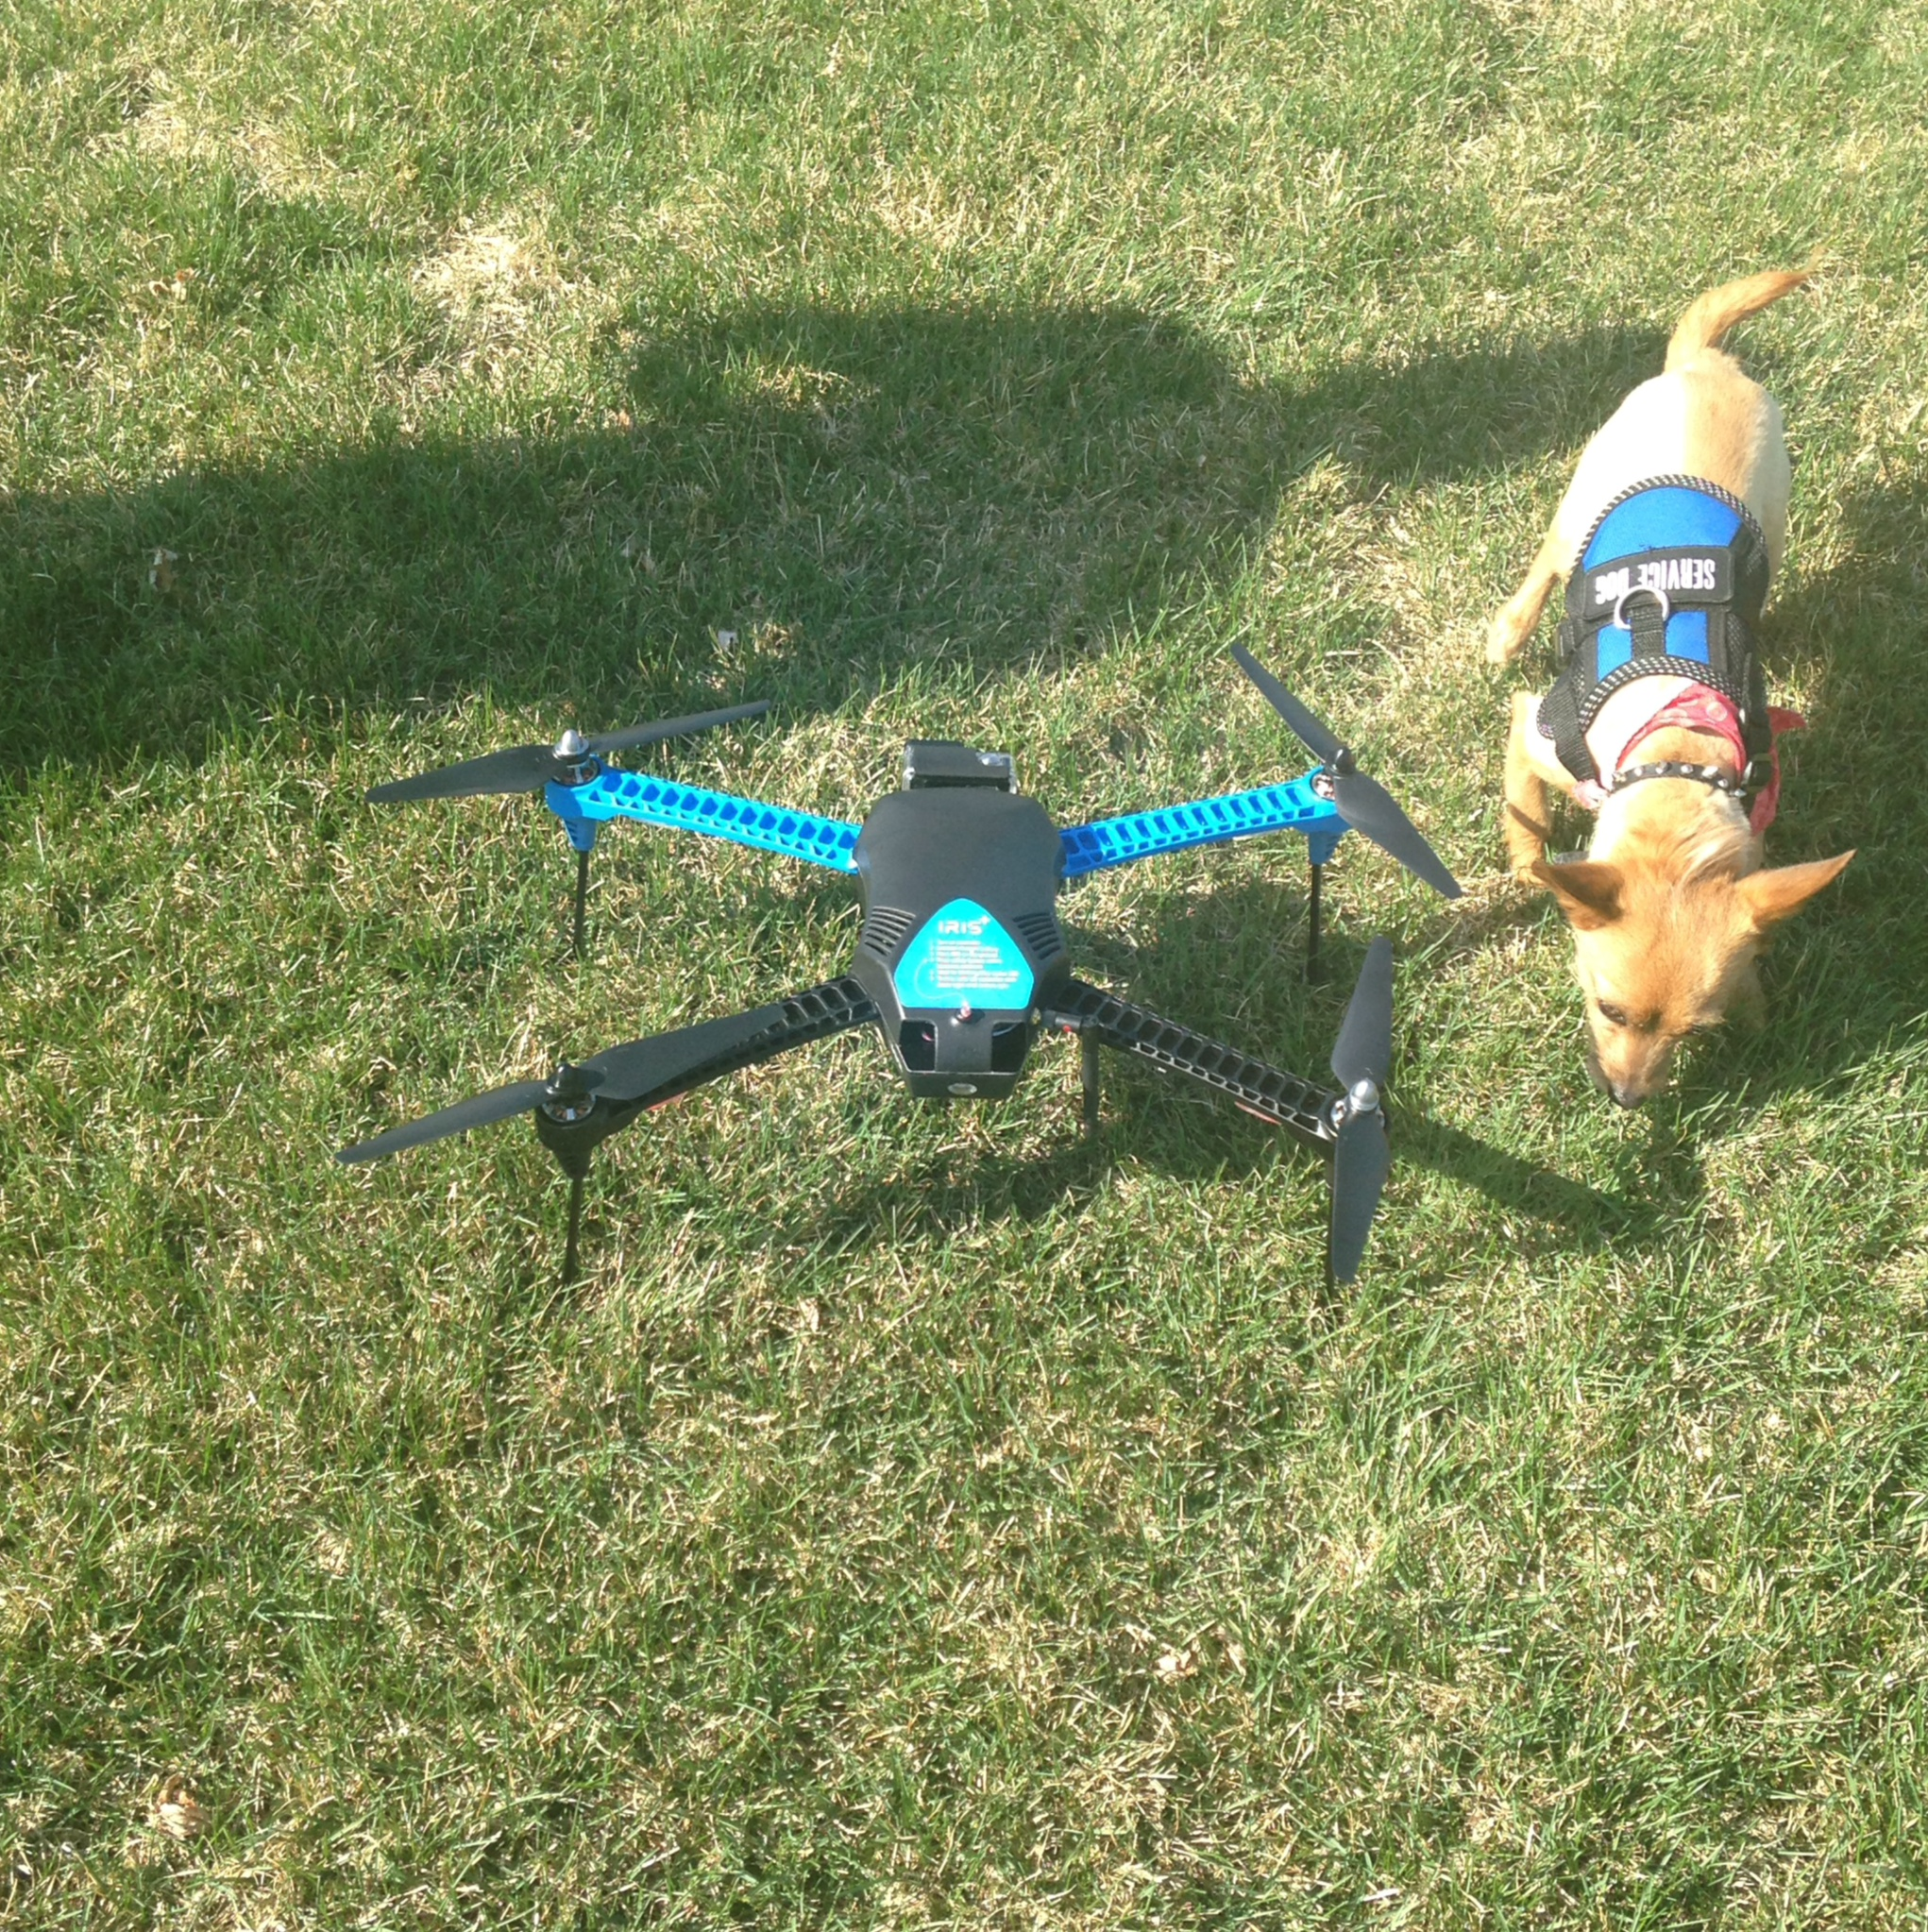 A test flight with the IRIS+ Drone by Berkeley-based 3D Robotics as our safety dog does pre-launch inspections.